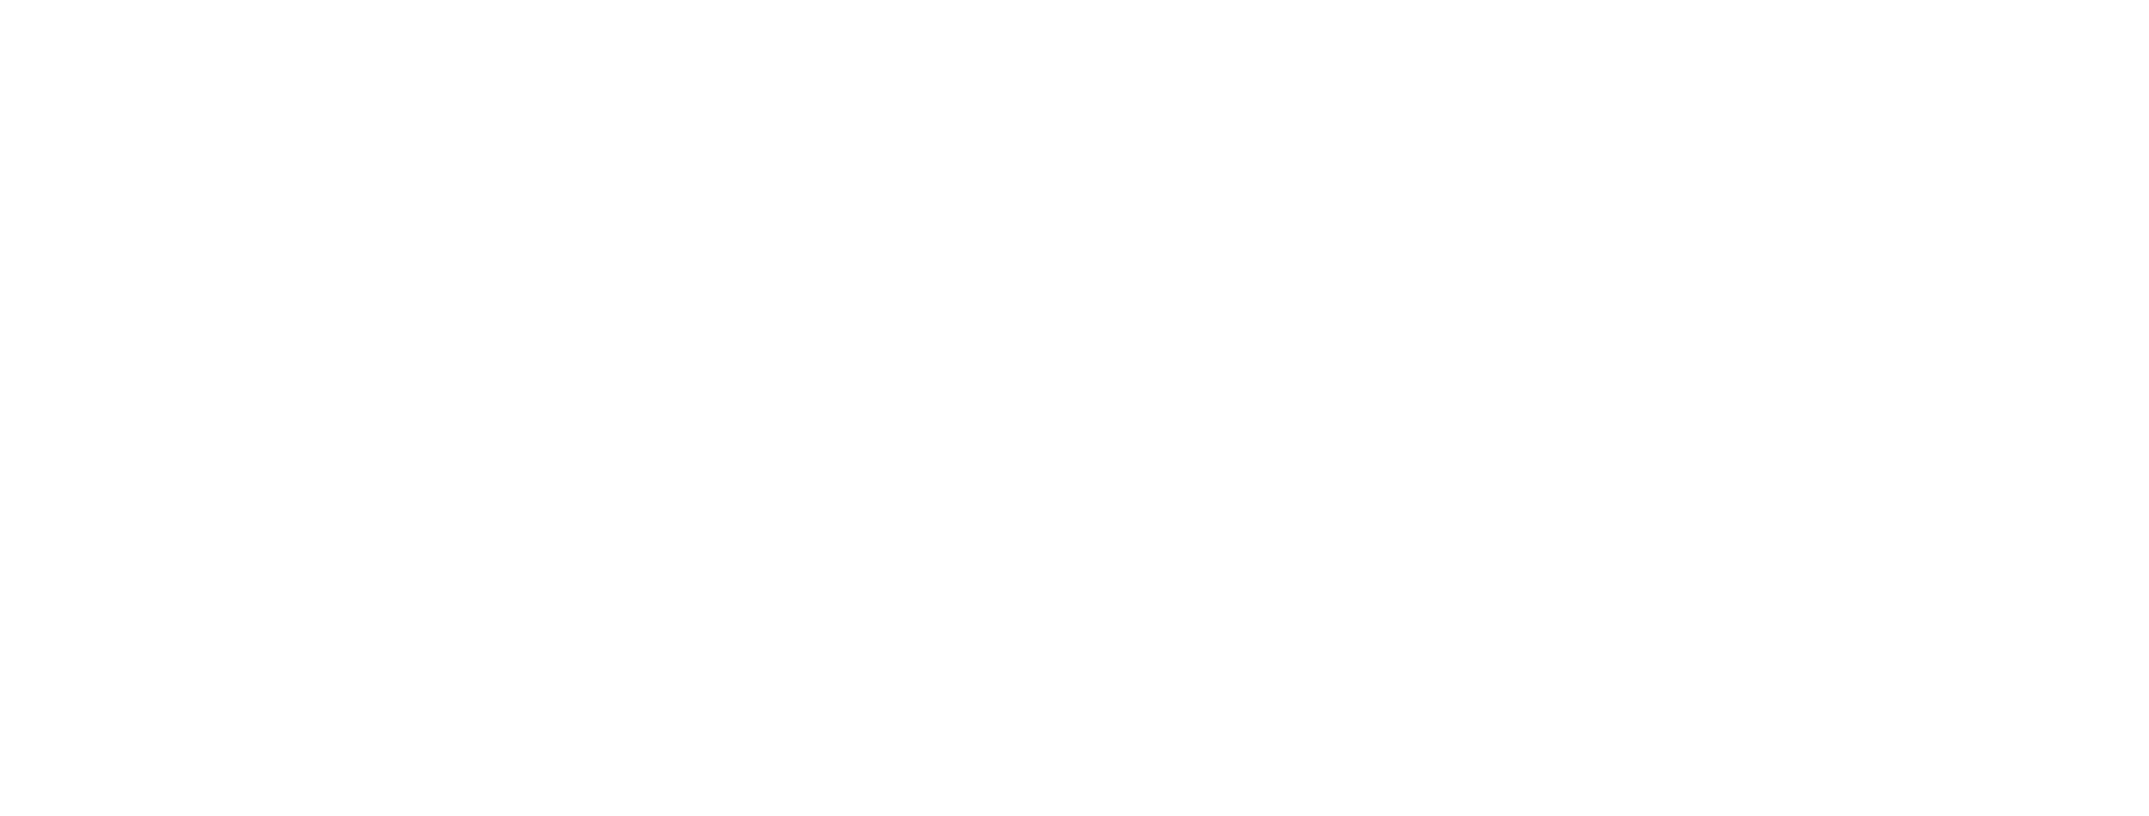 Launch Tech Made Easy